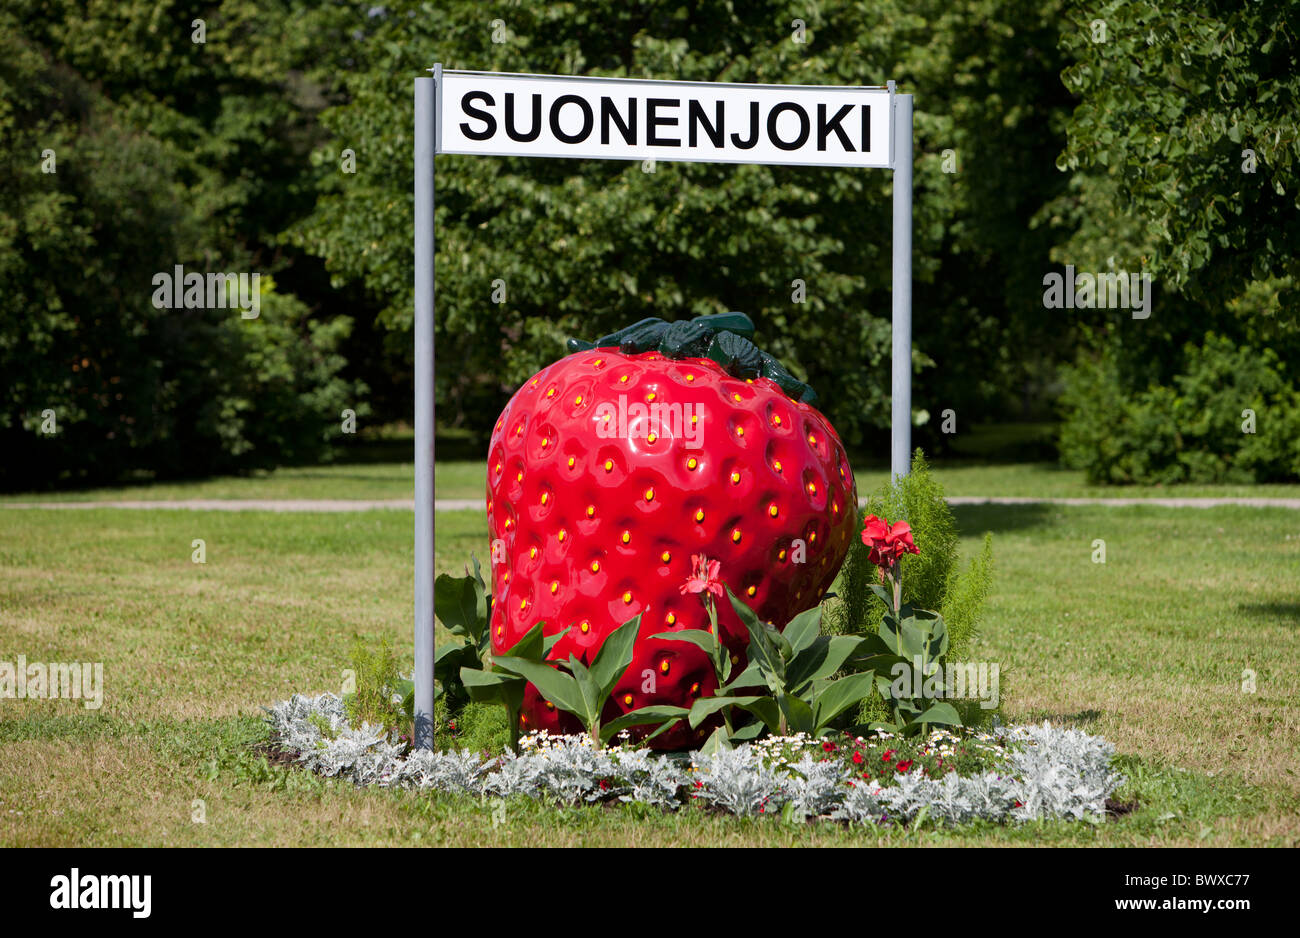 Strawberry symbol and sign of city of Suonenjoki , where strawberry cultivation is a major source of income at summertime - Stock Image